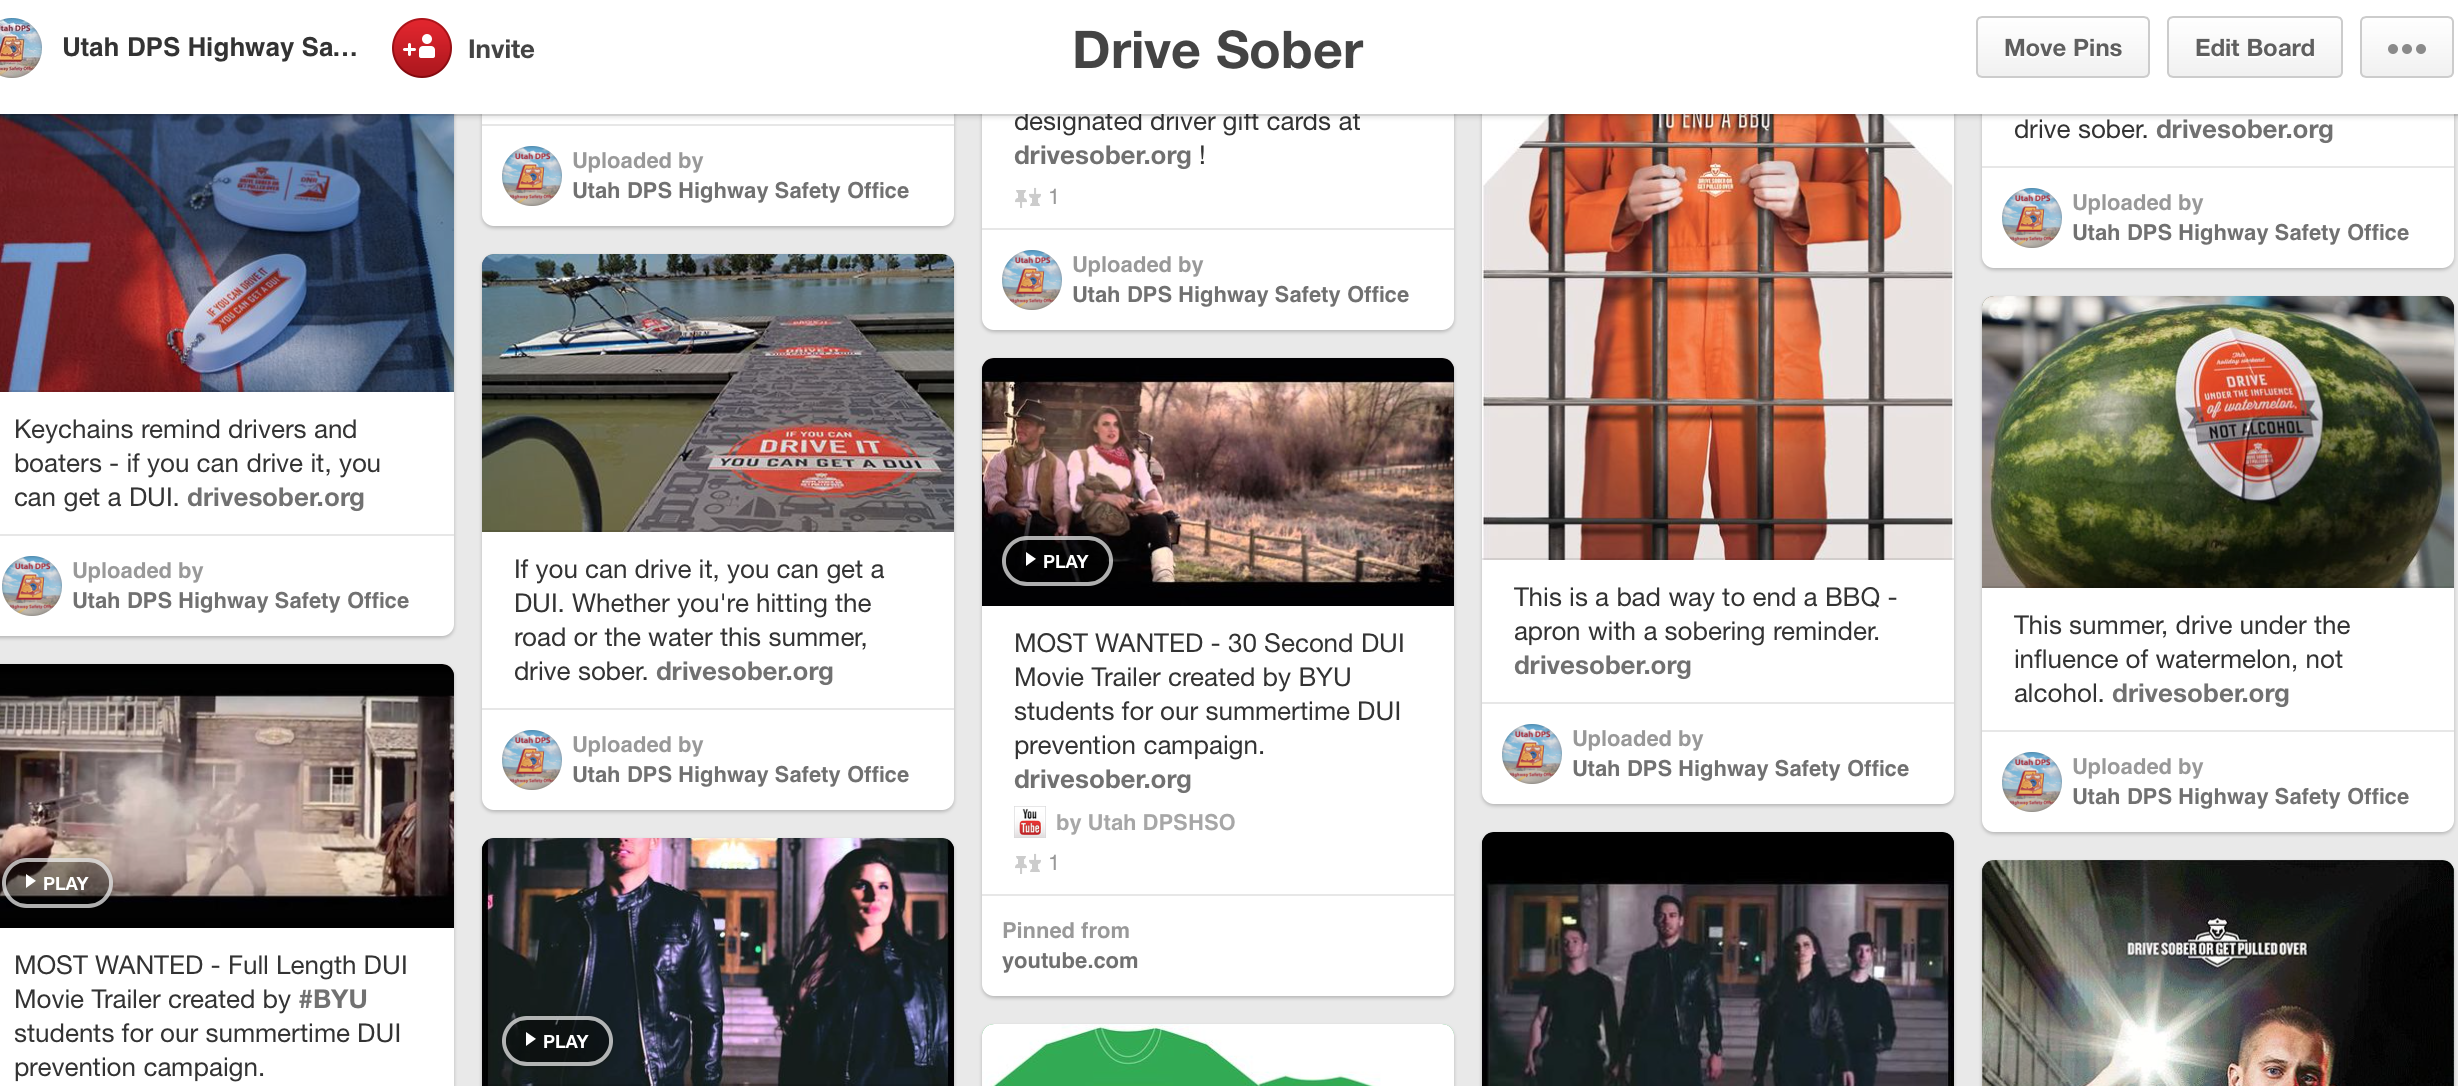 Screen cap of our drive sober Pinterest Page